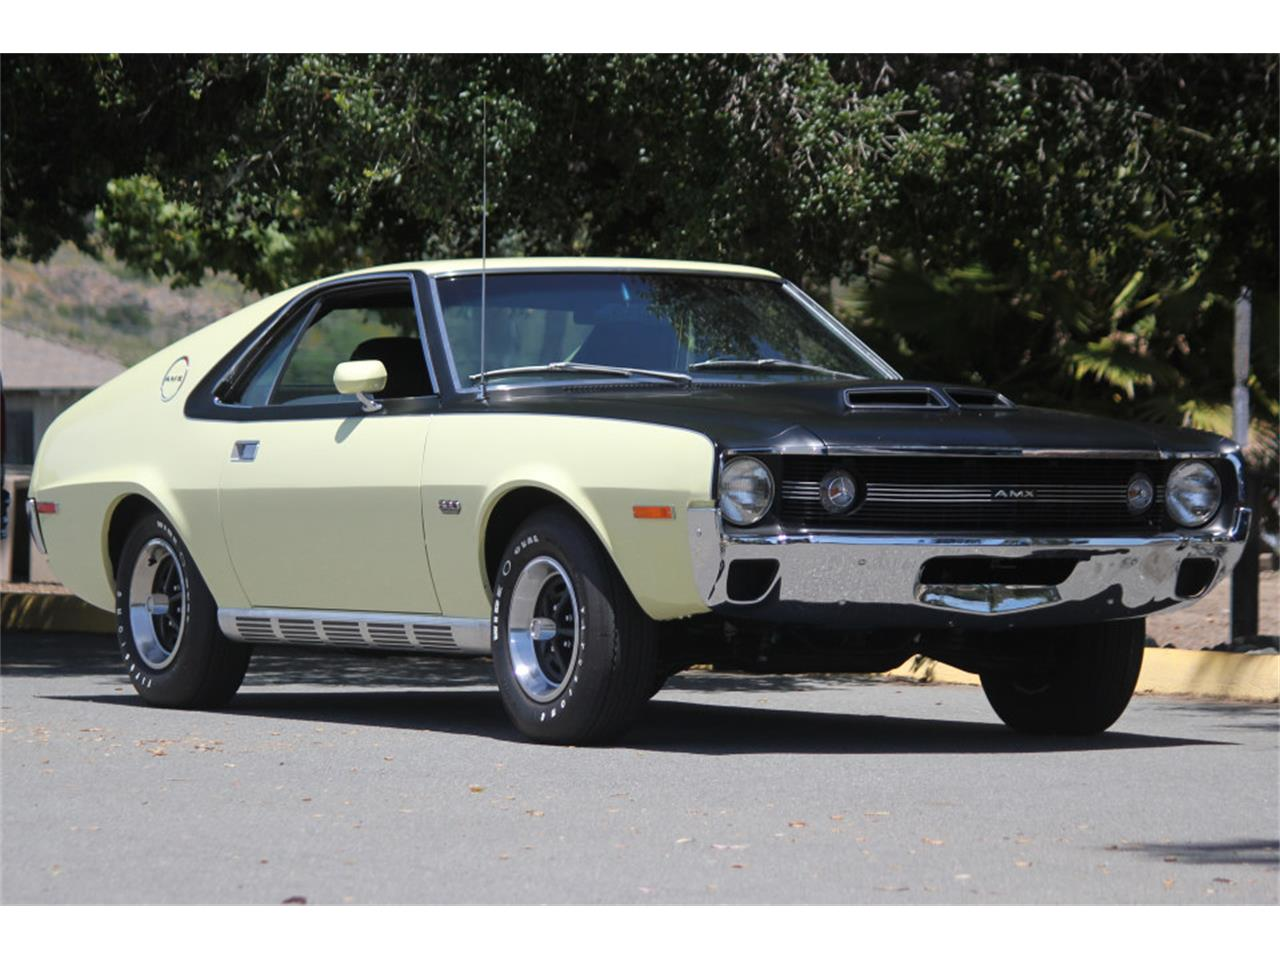 Large Picture of 1970 AMC AMX Offered by Precious Metals - QCFB